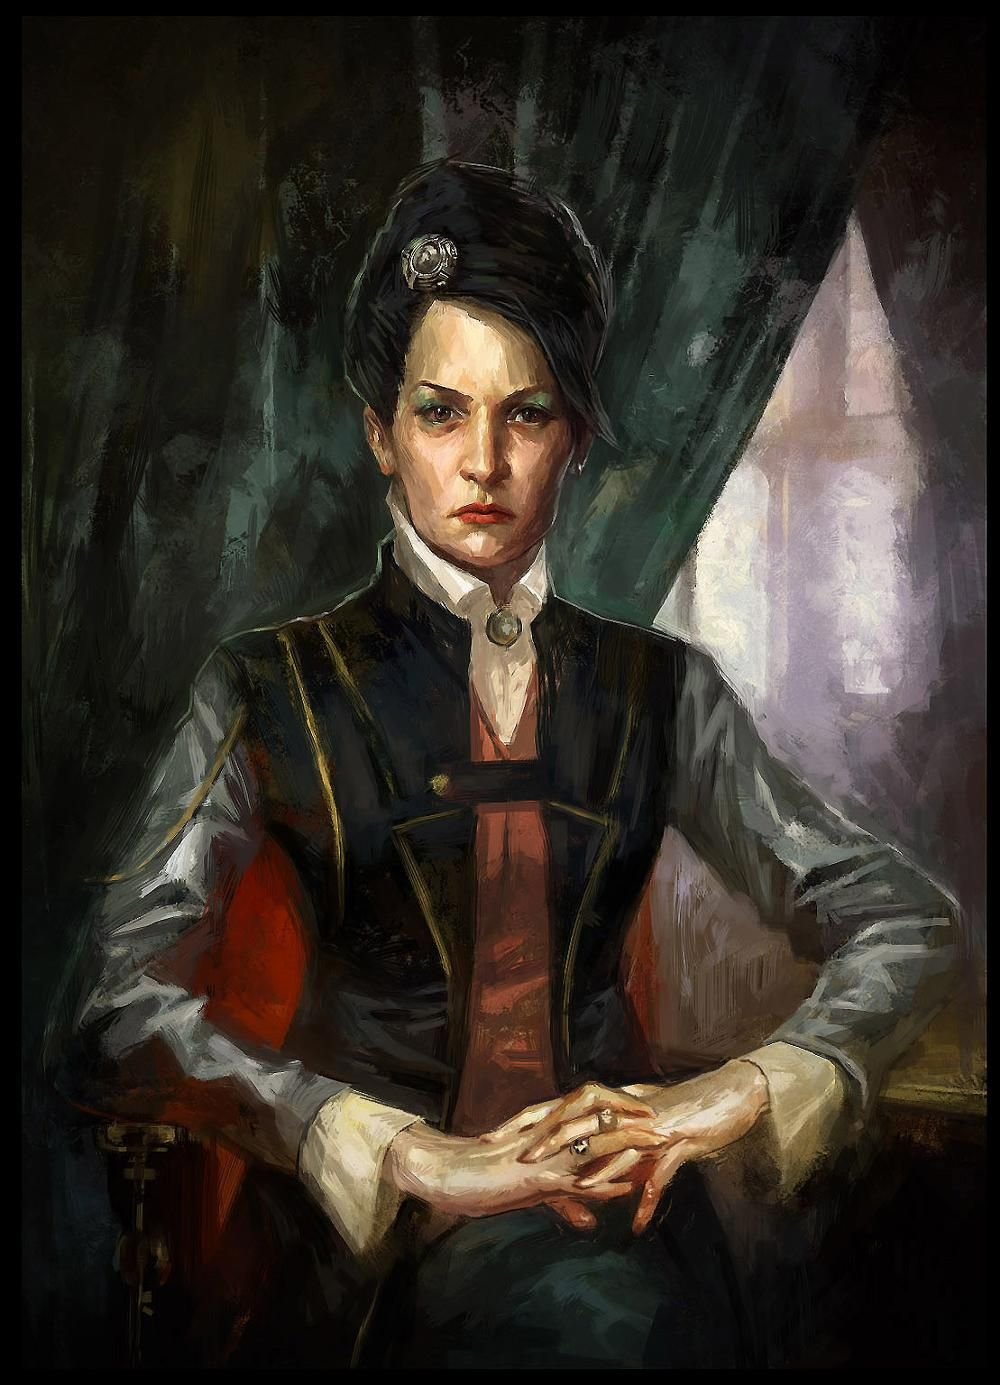 Sokolov Painting Vera Moray And The Affix Of Her Skin